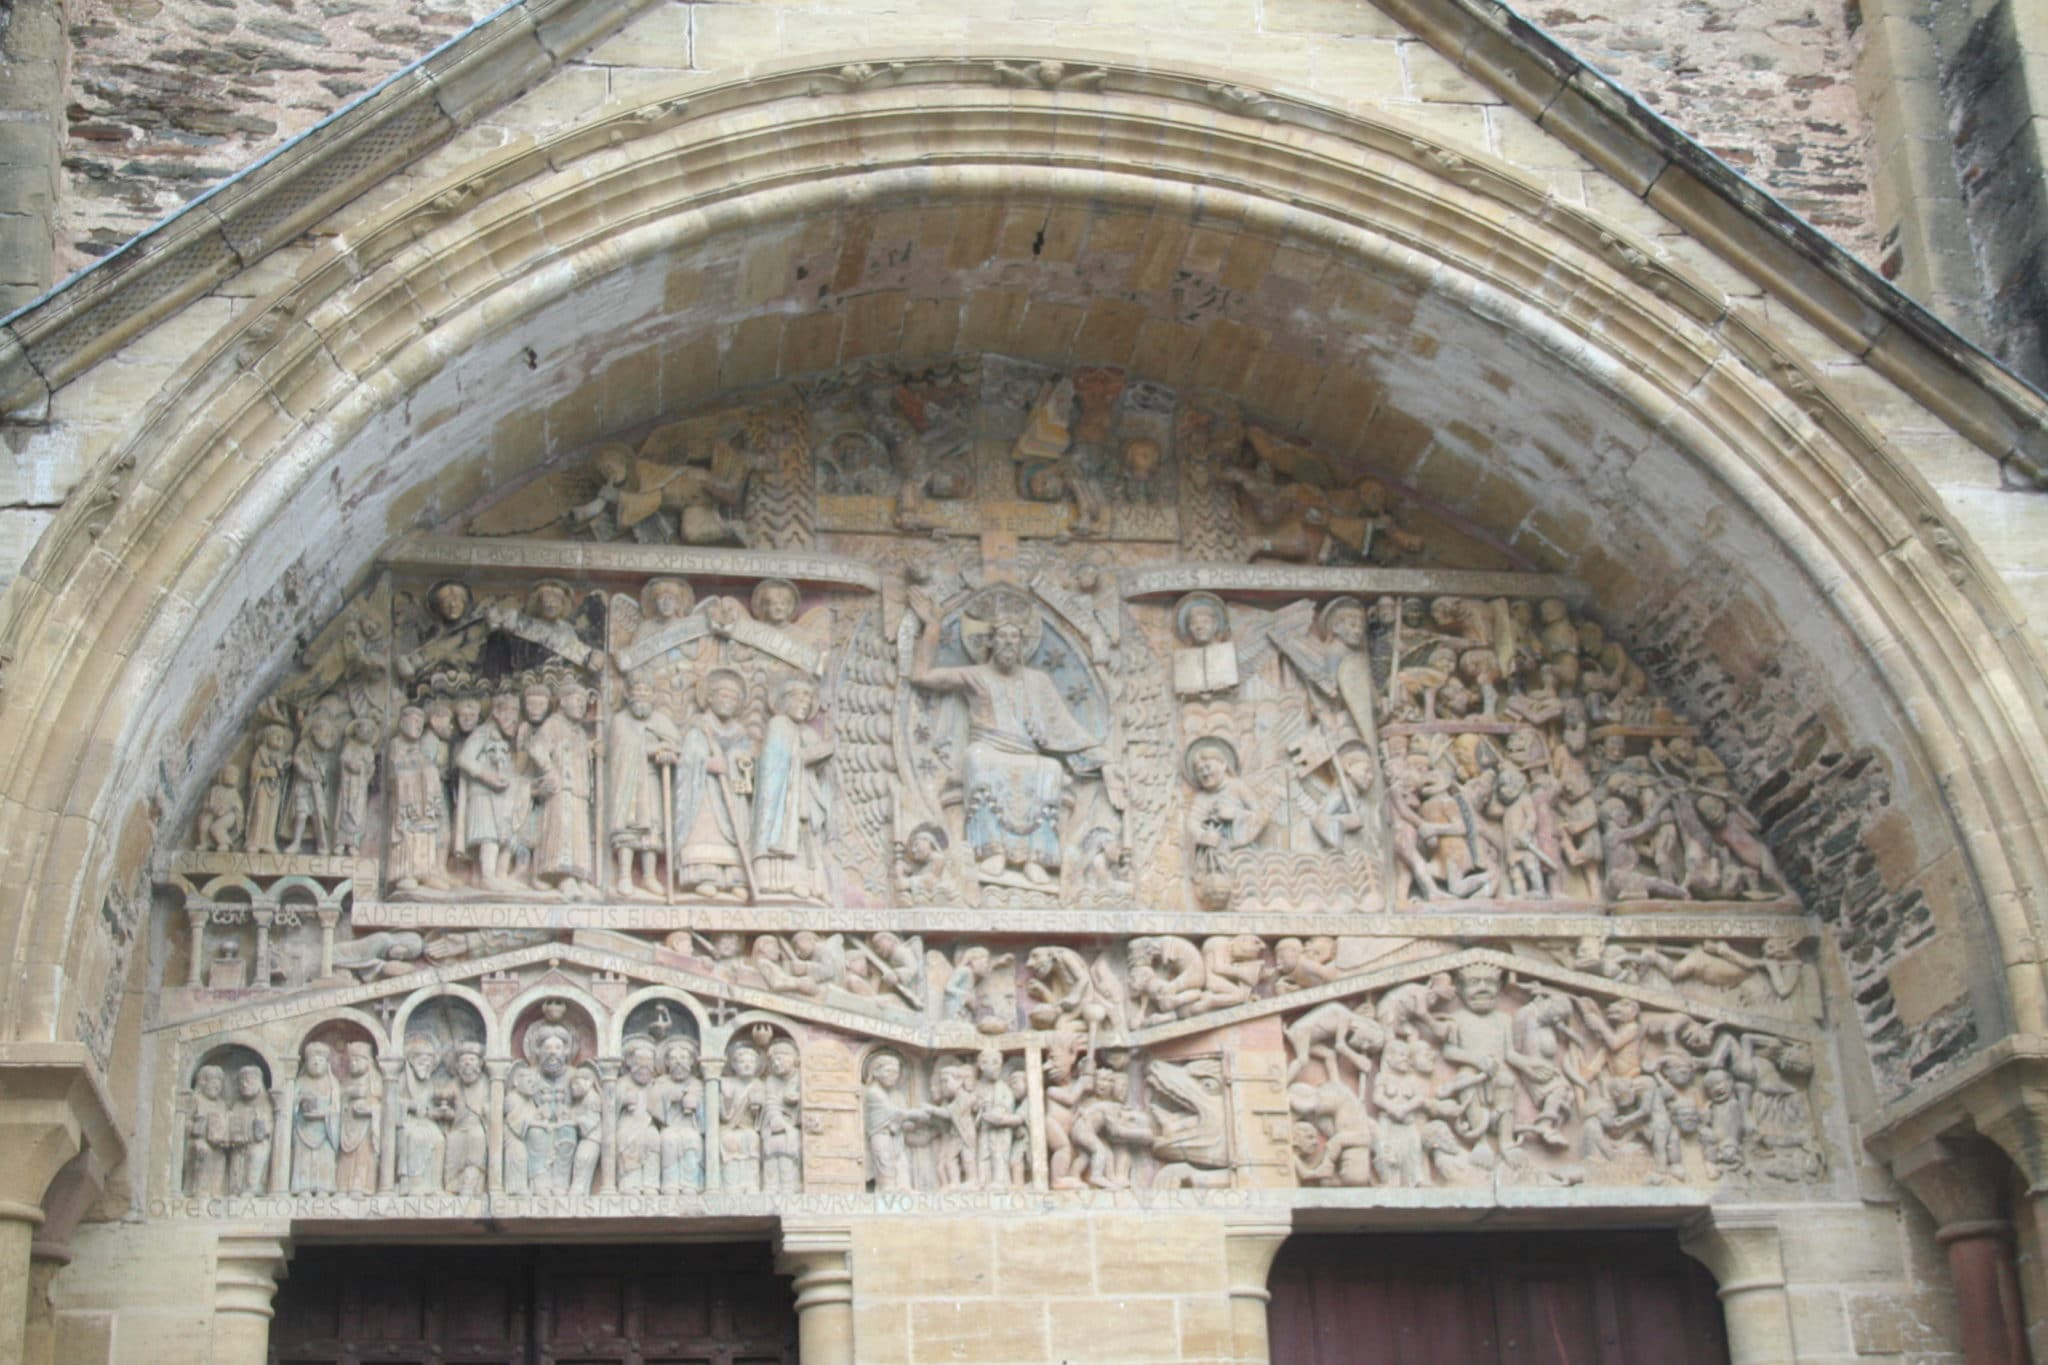 Tympanum from the Abbey Church of Sainte-Foy, Conques, France